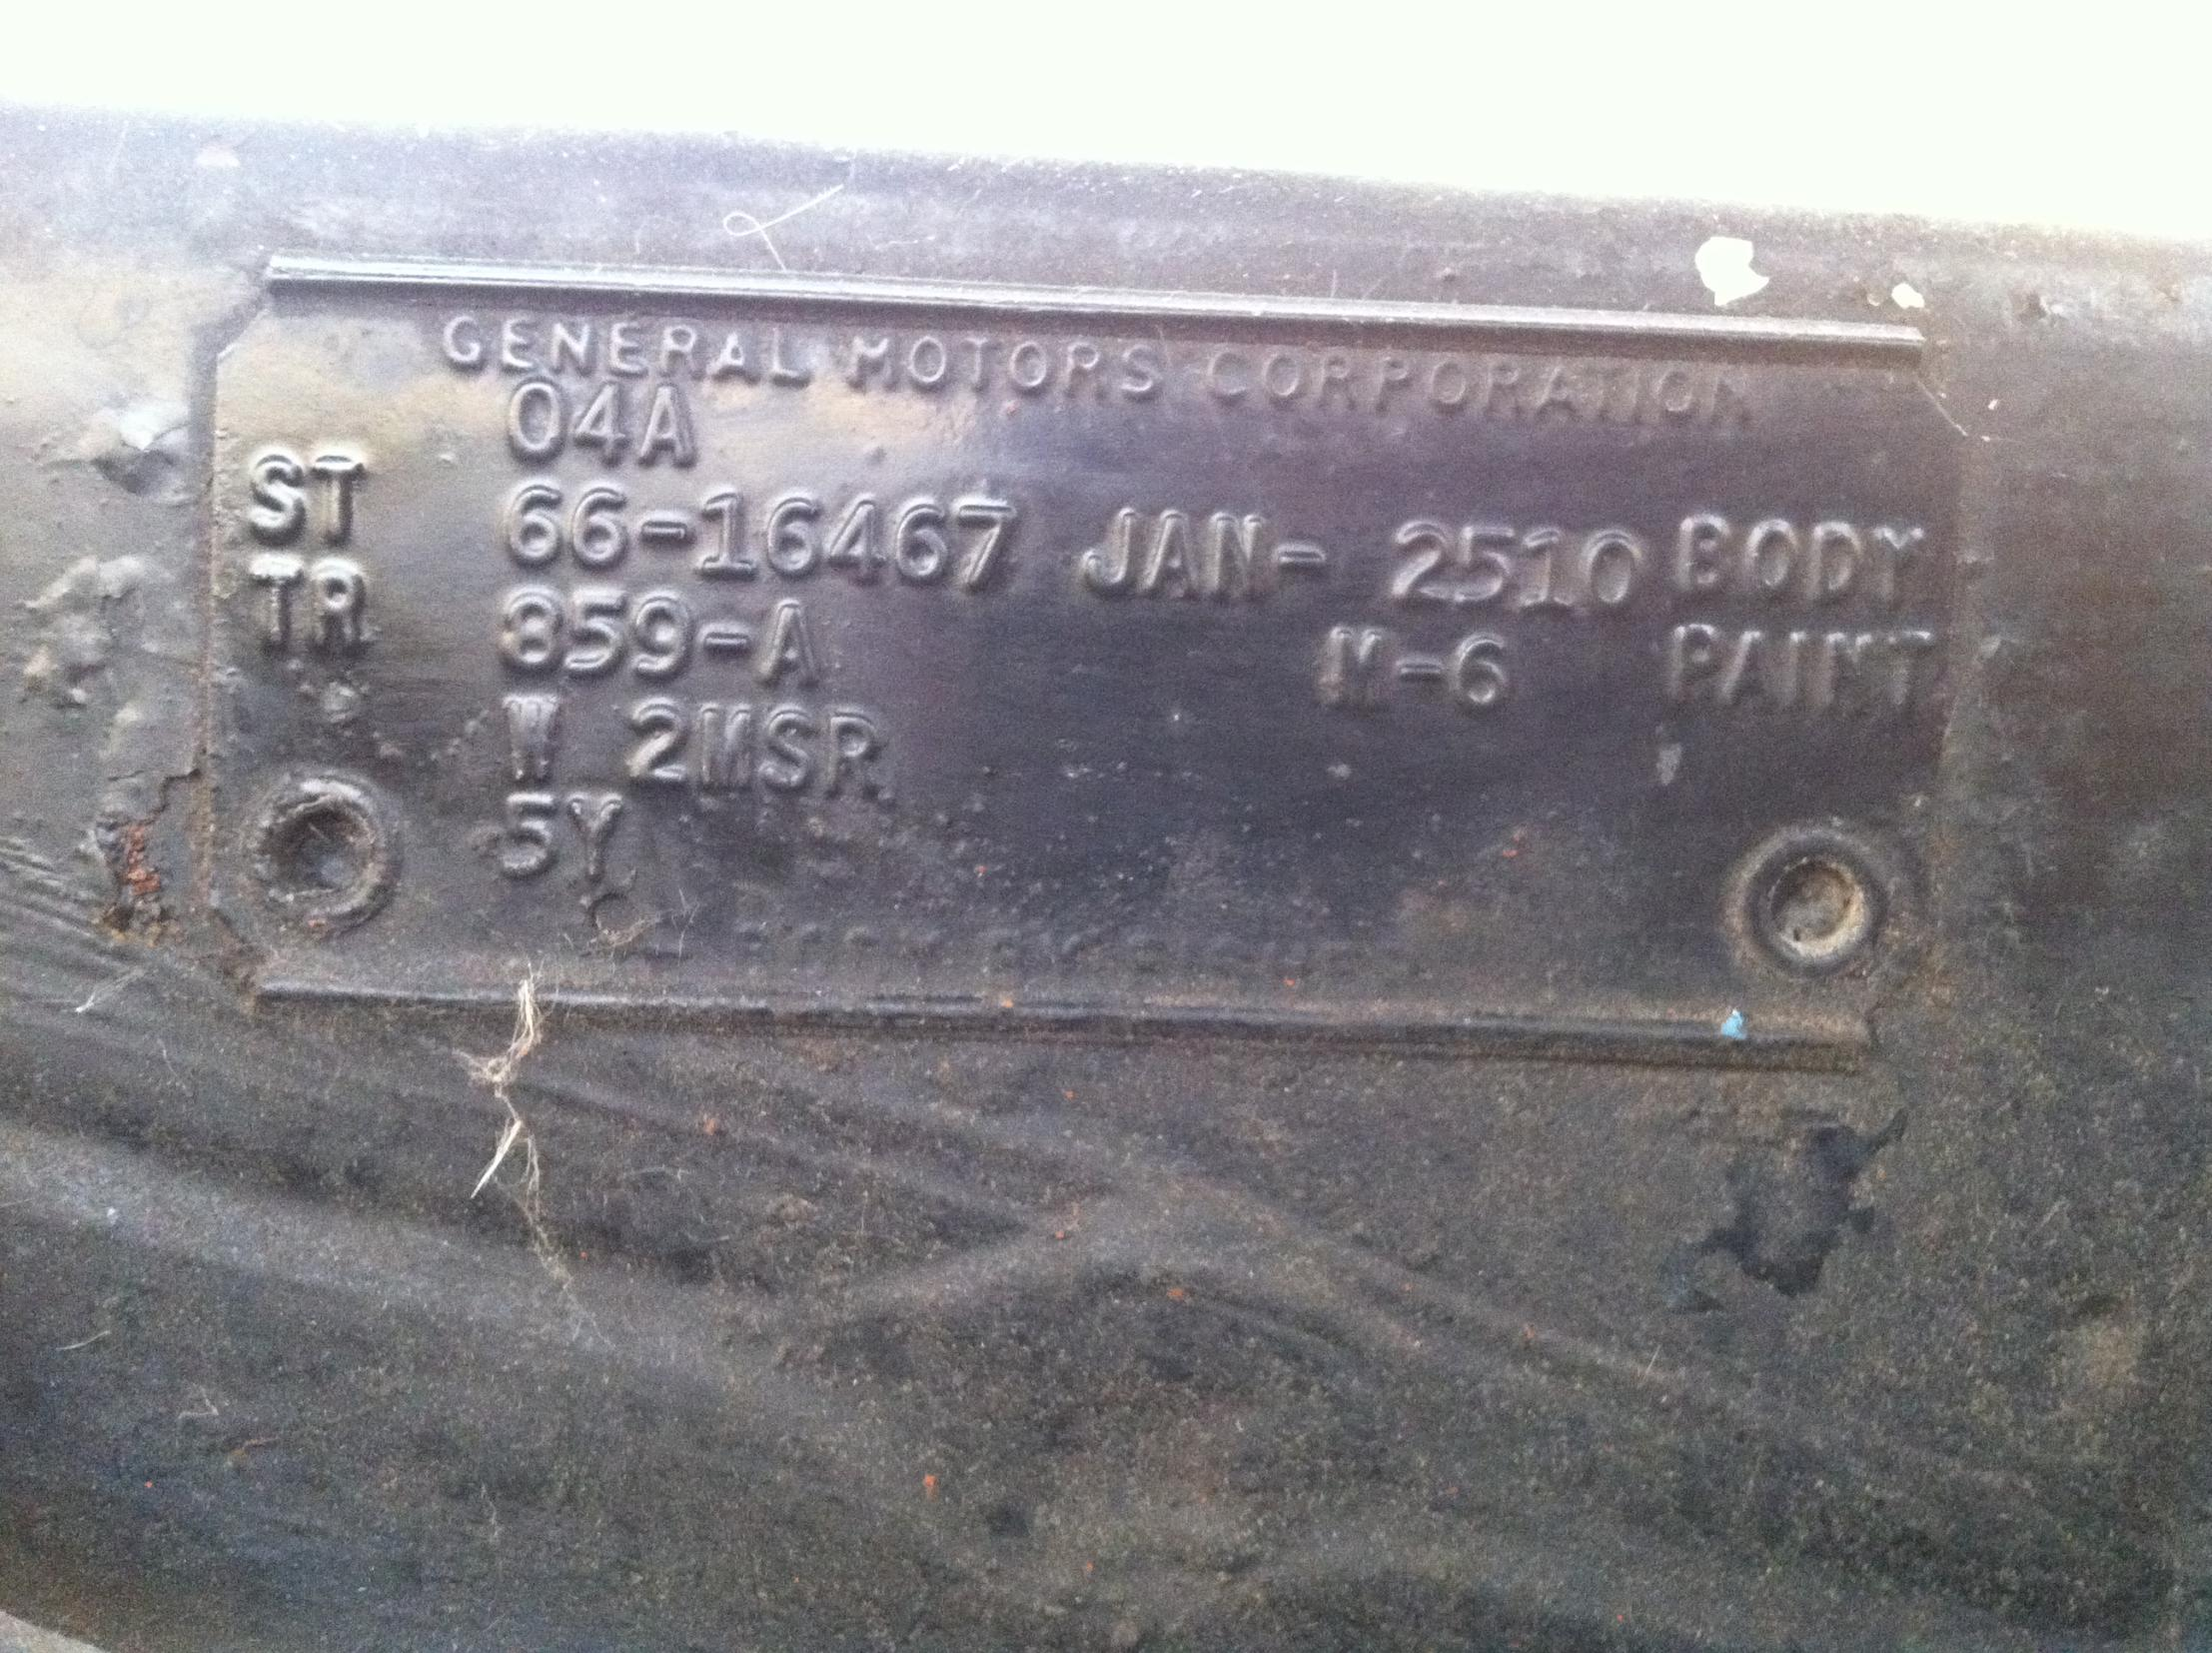 1966 Impala - Need help to decode Body Tag - Chevy Impala Forums